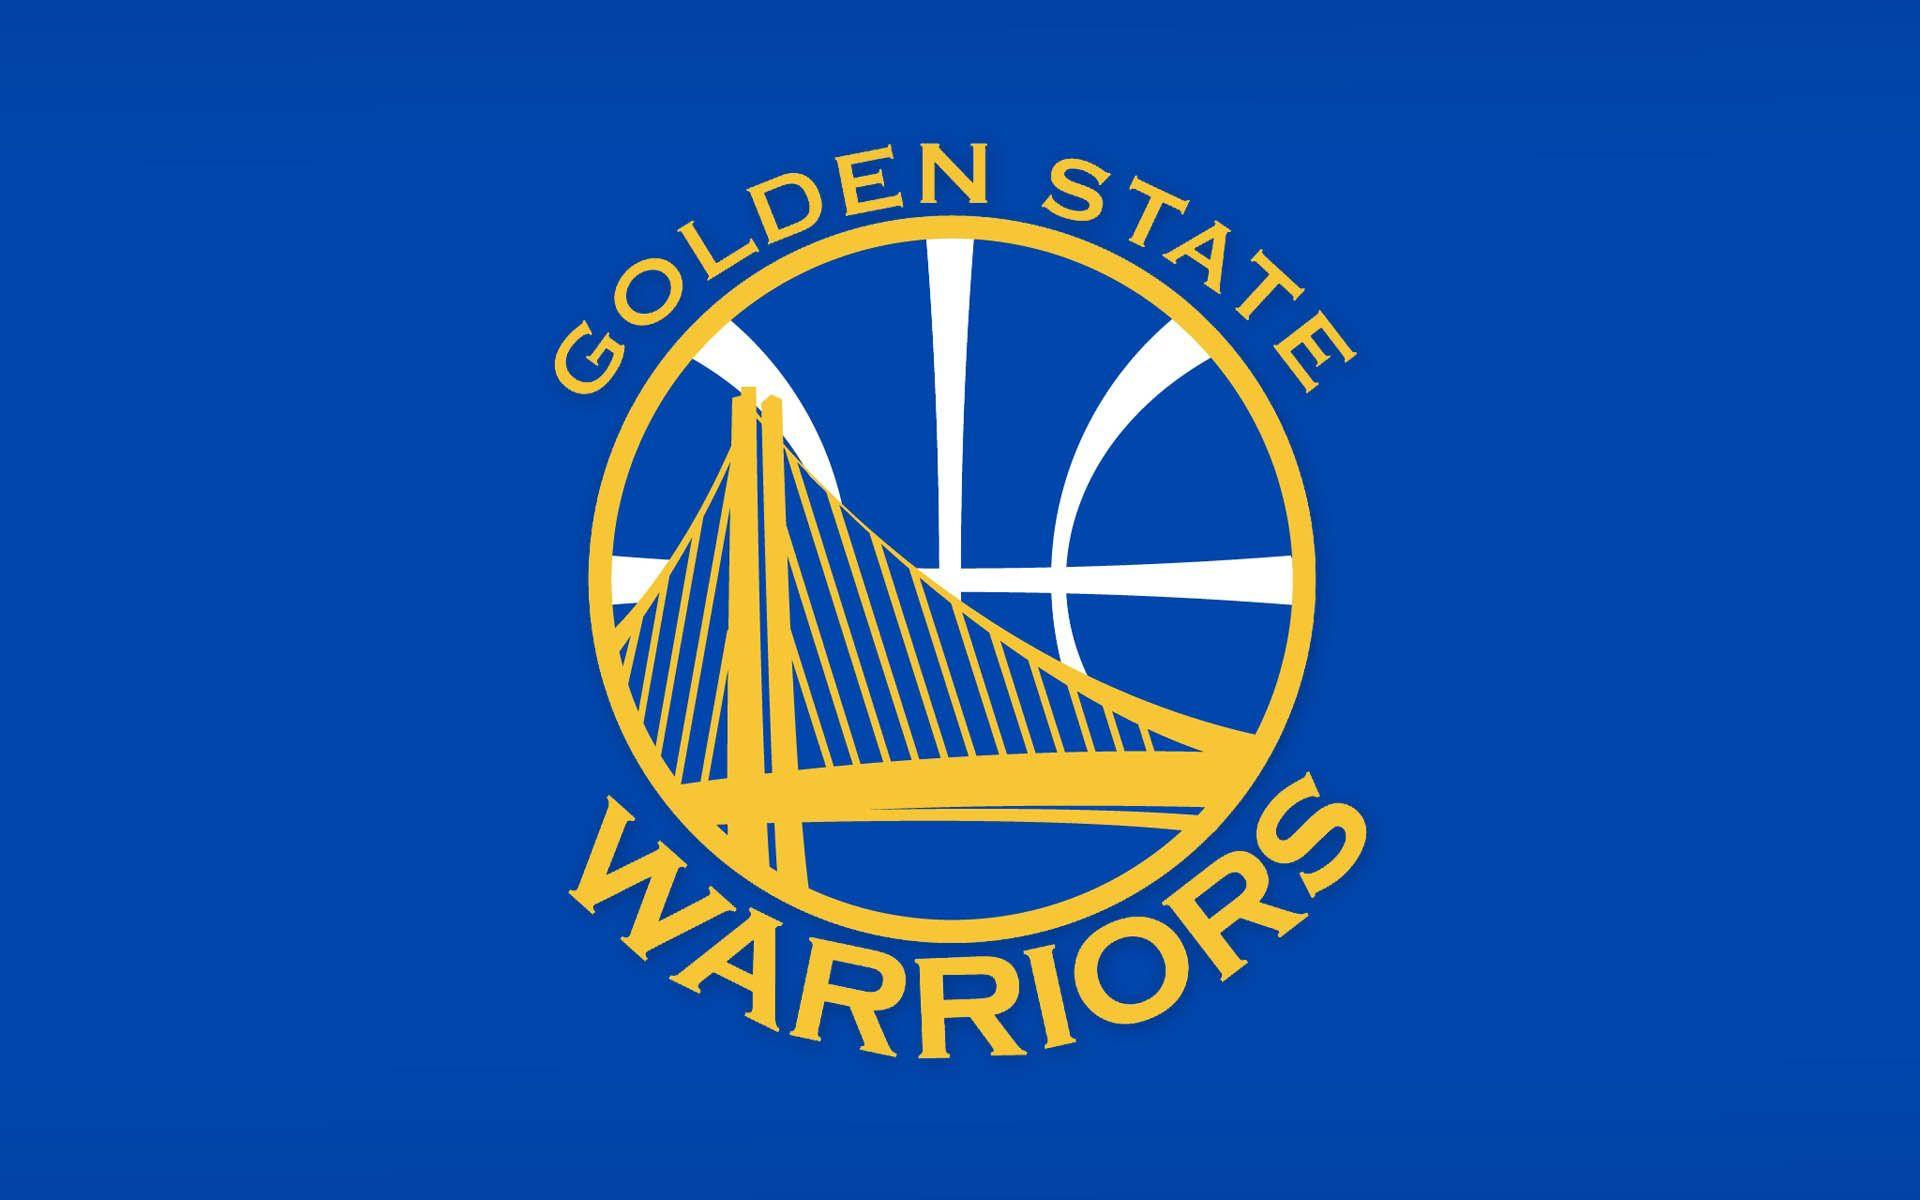 NBA Golden State Warriors Logo - 1920x1200 - Full HD 16/10 ...